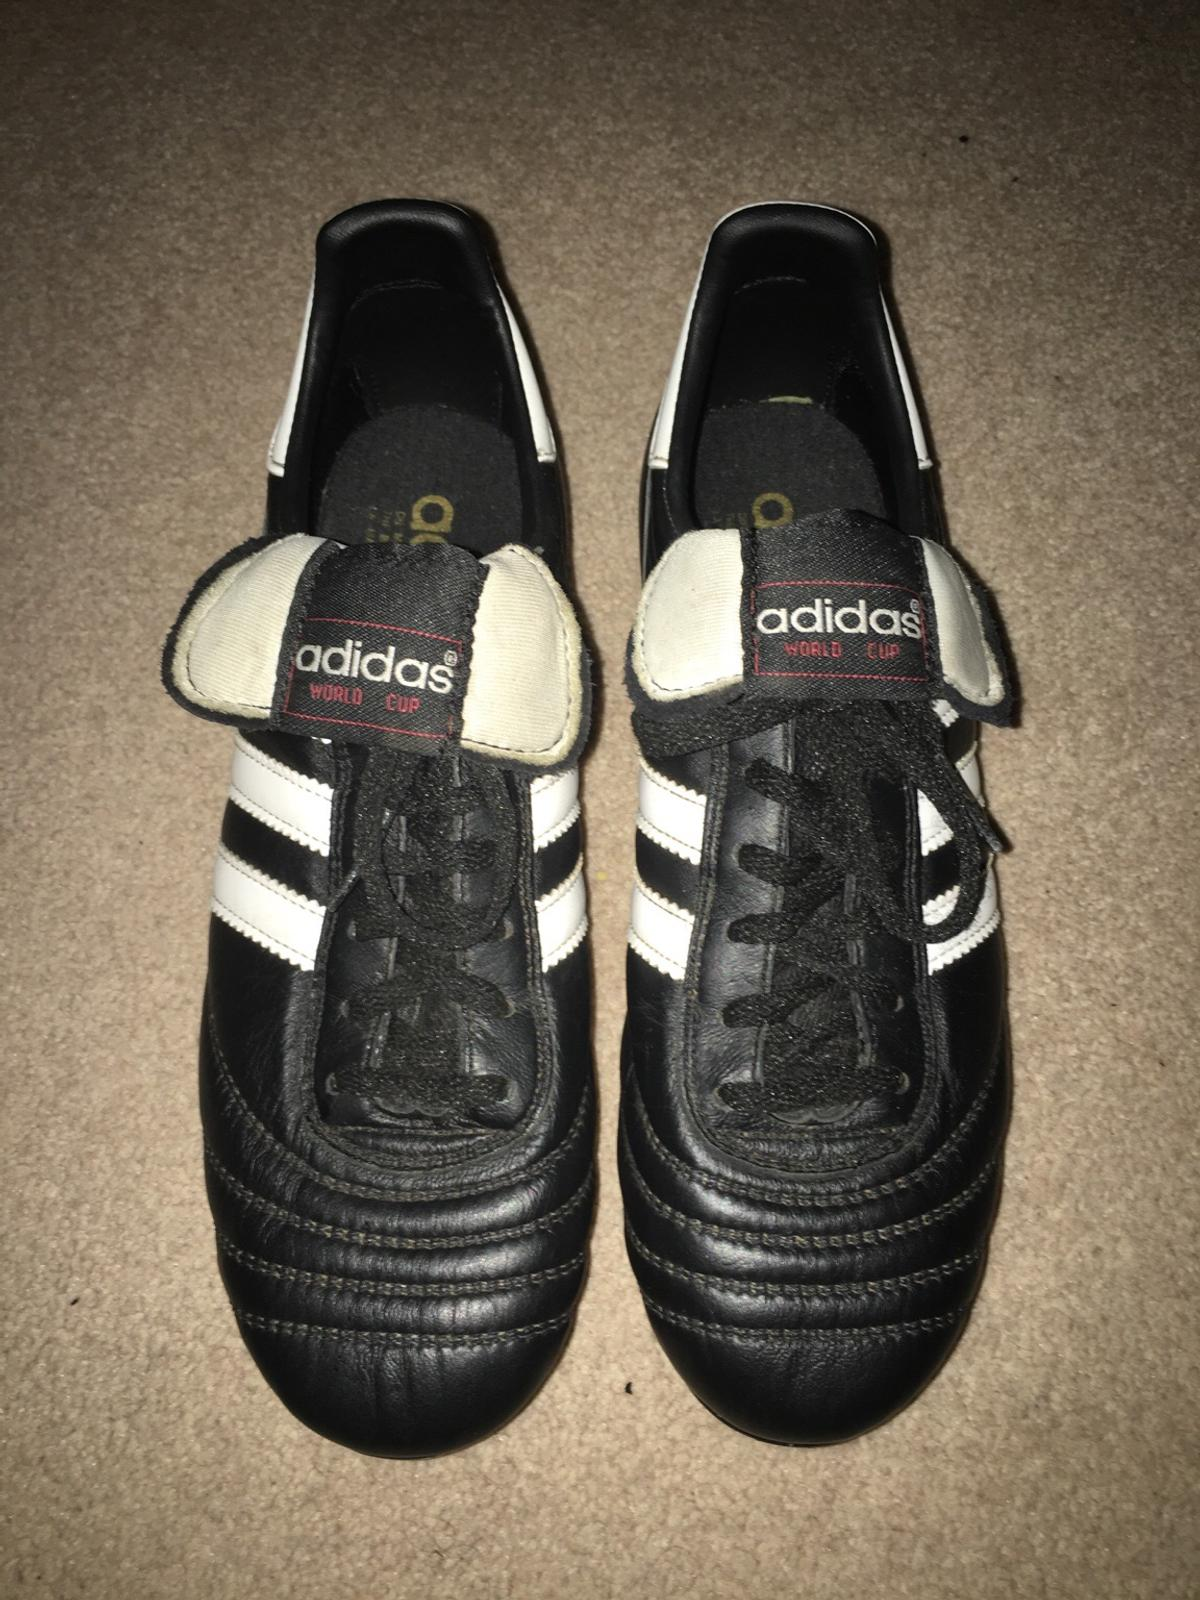 Adidas World Cup football boots in ML6